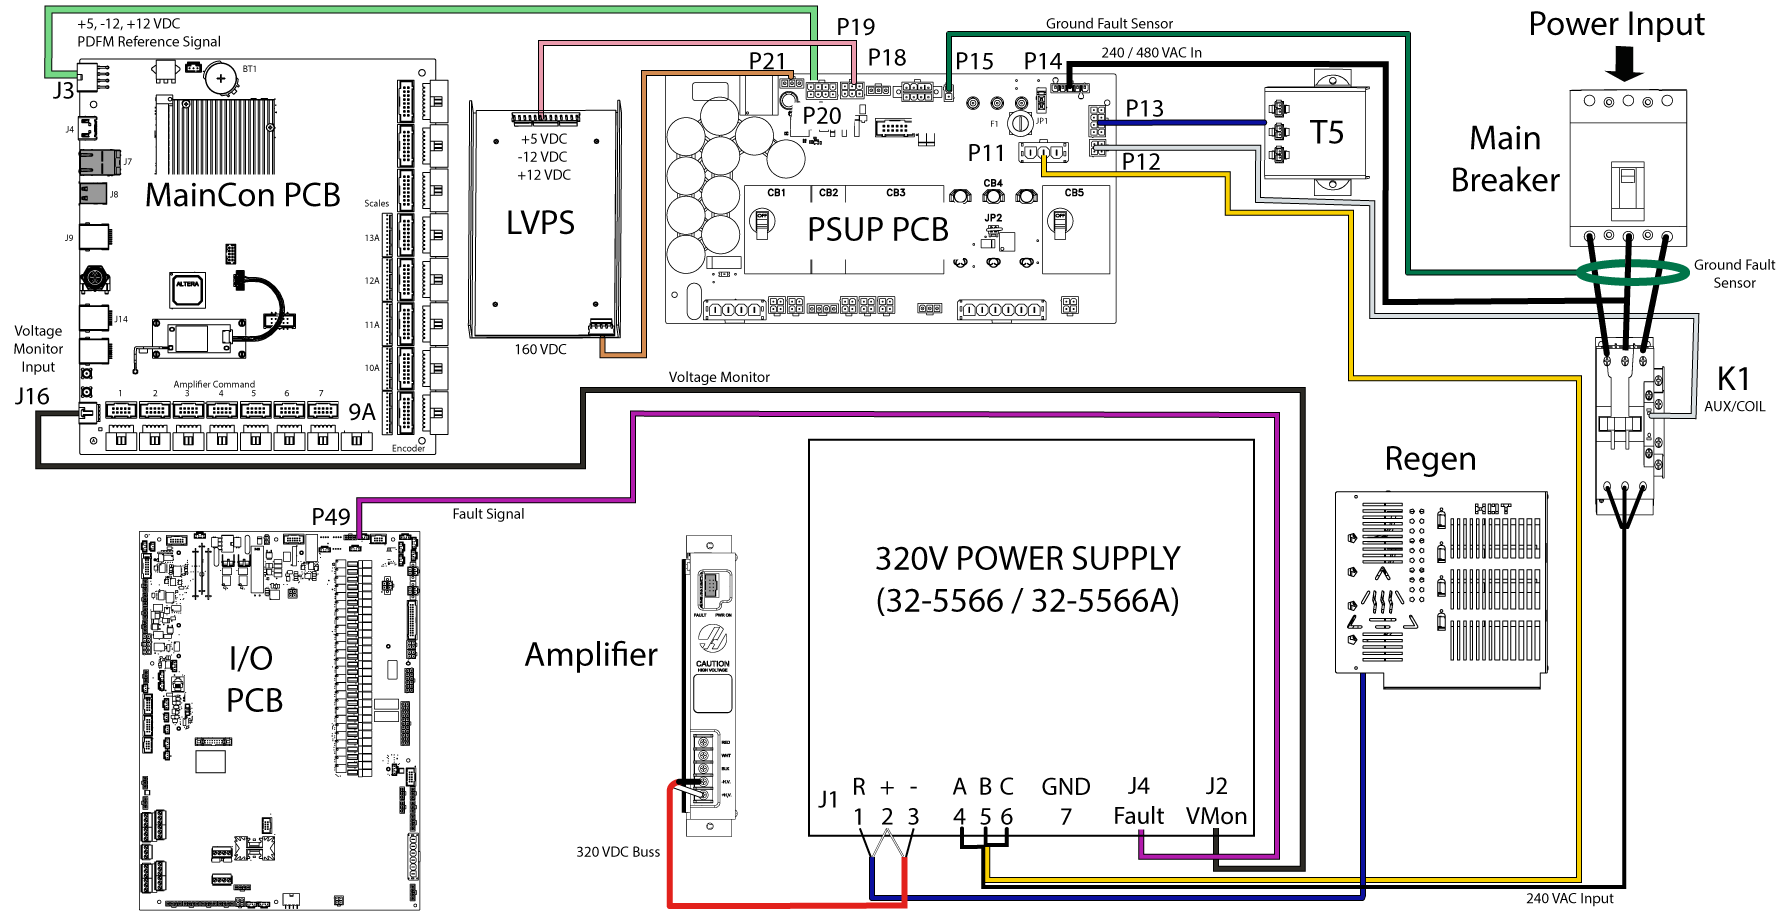 High Voltage 320V Power Supply (MMPS) - Troubleshooting Guide